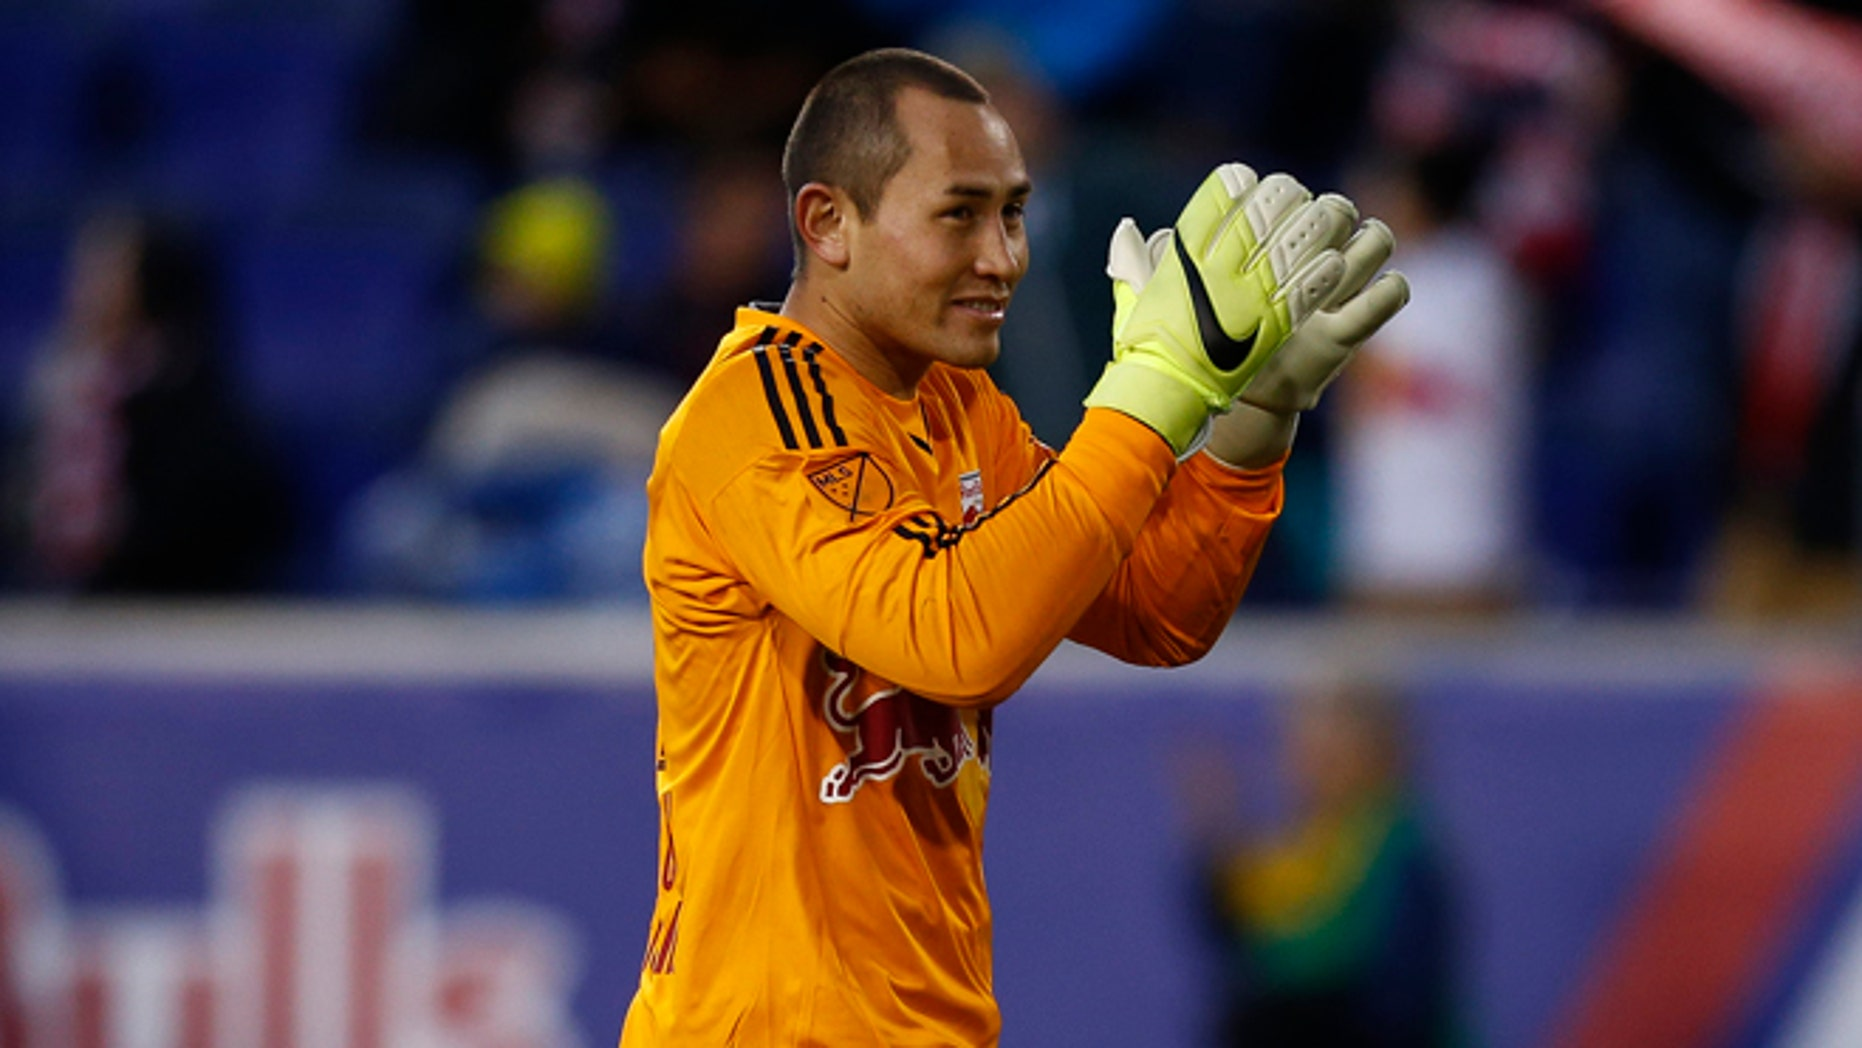 HARRISON, NJ - MARCH 22:  Luis Robles #31 of New York Red Bulls cheers the crowd after a victory over D.C. United at Red Bull Arena on March 22, 2015 in Harrison, New Jersey.  (Photo by Jeff Zelevansky/Getty Images)